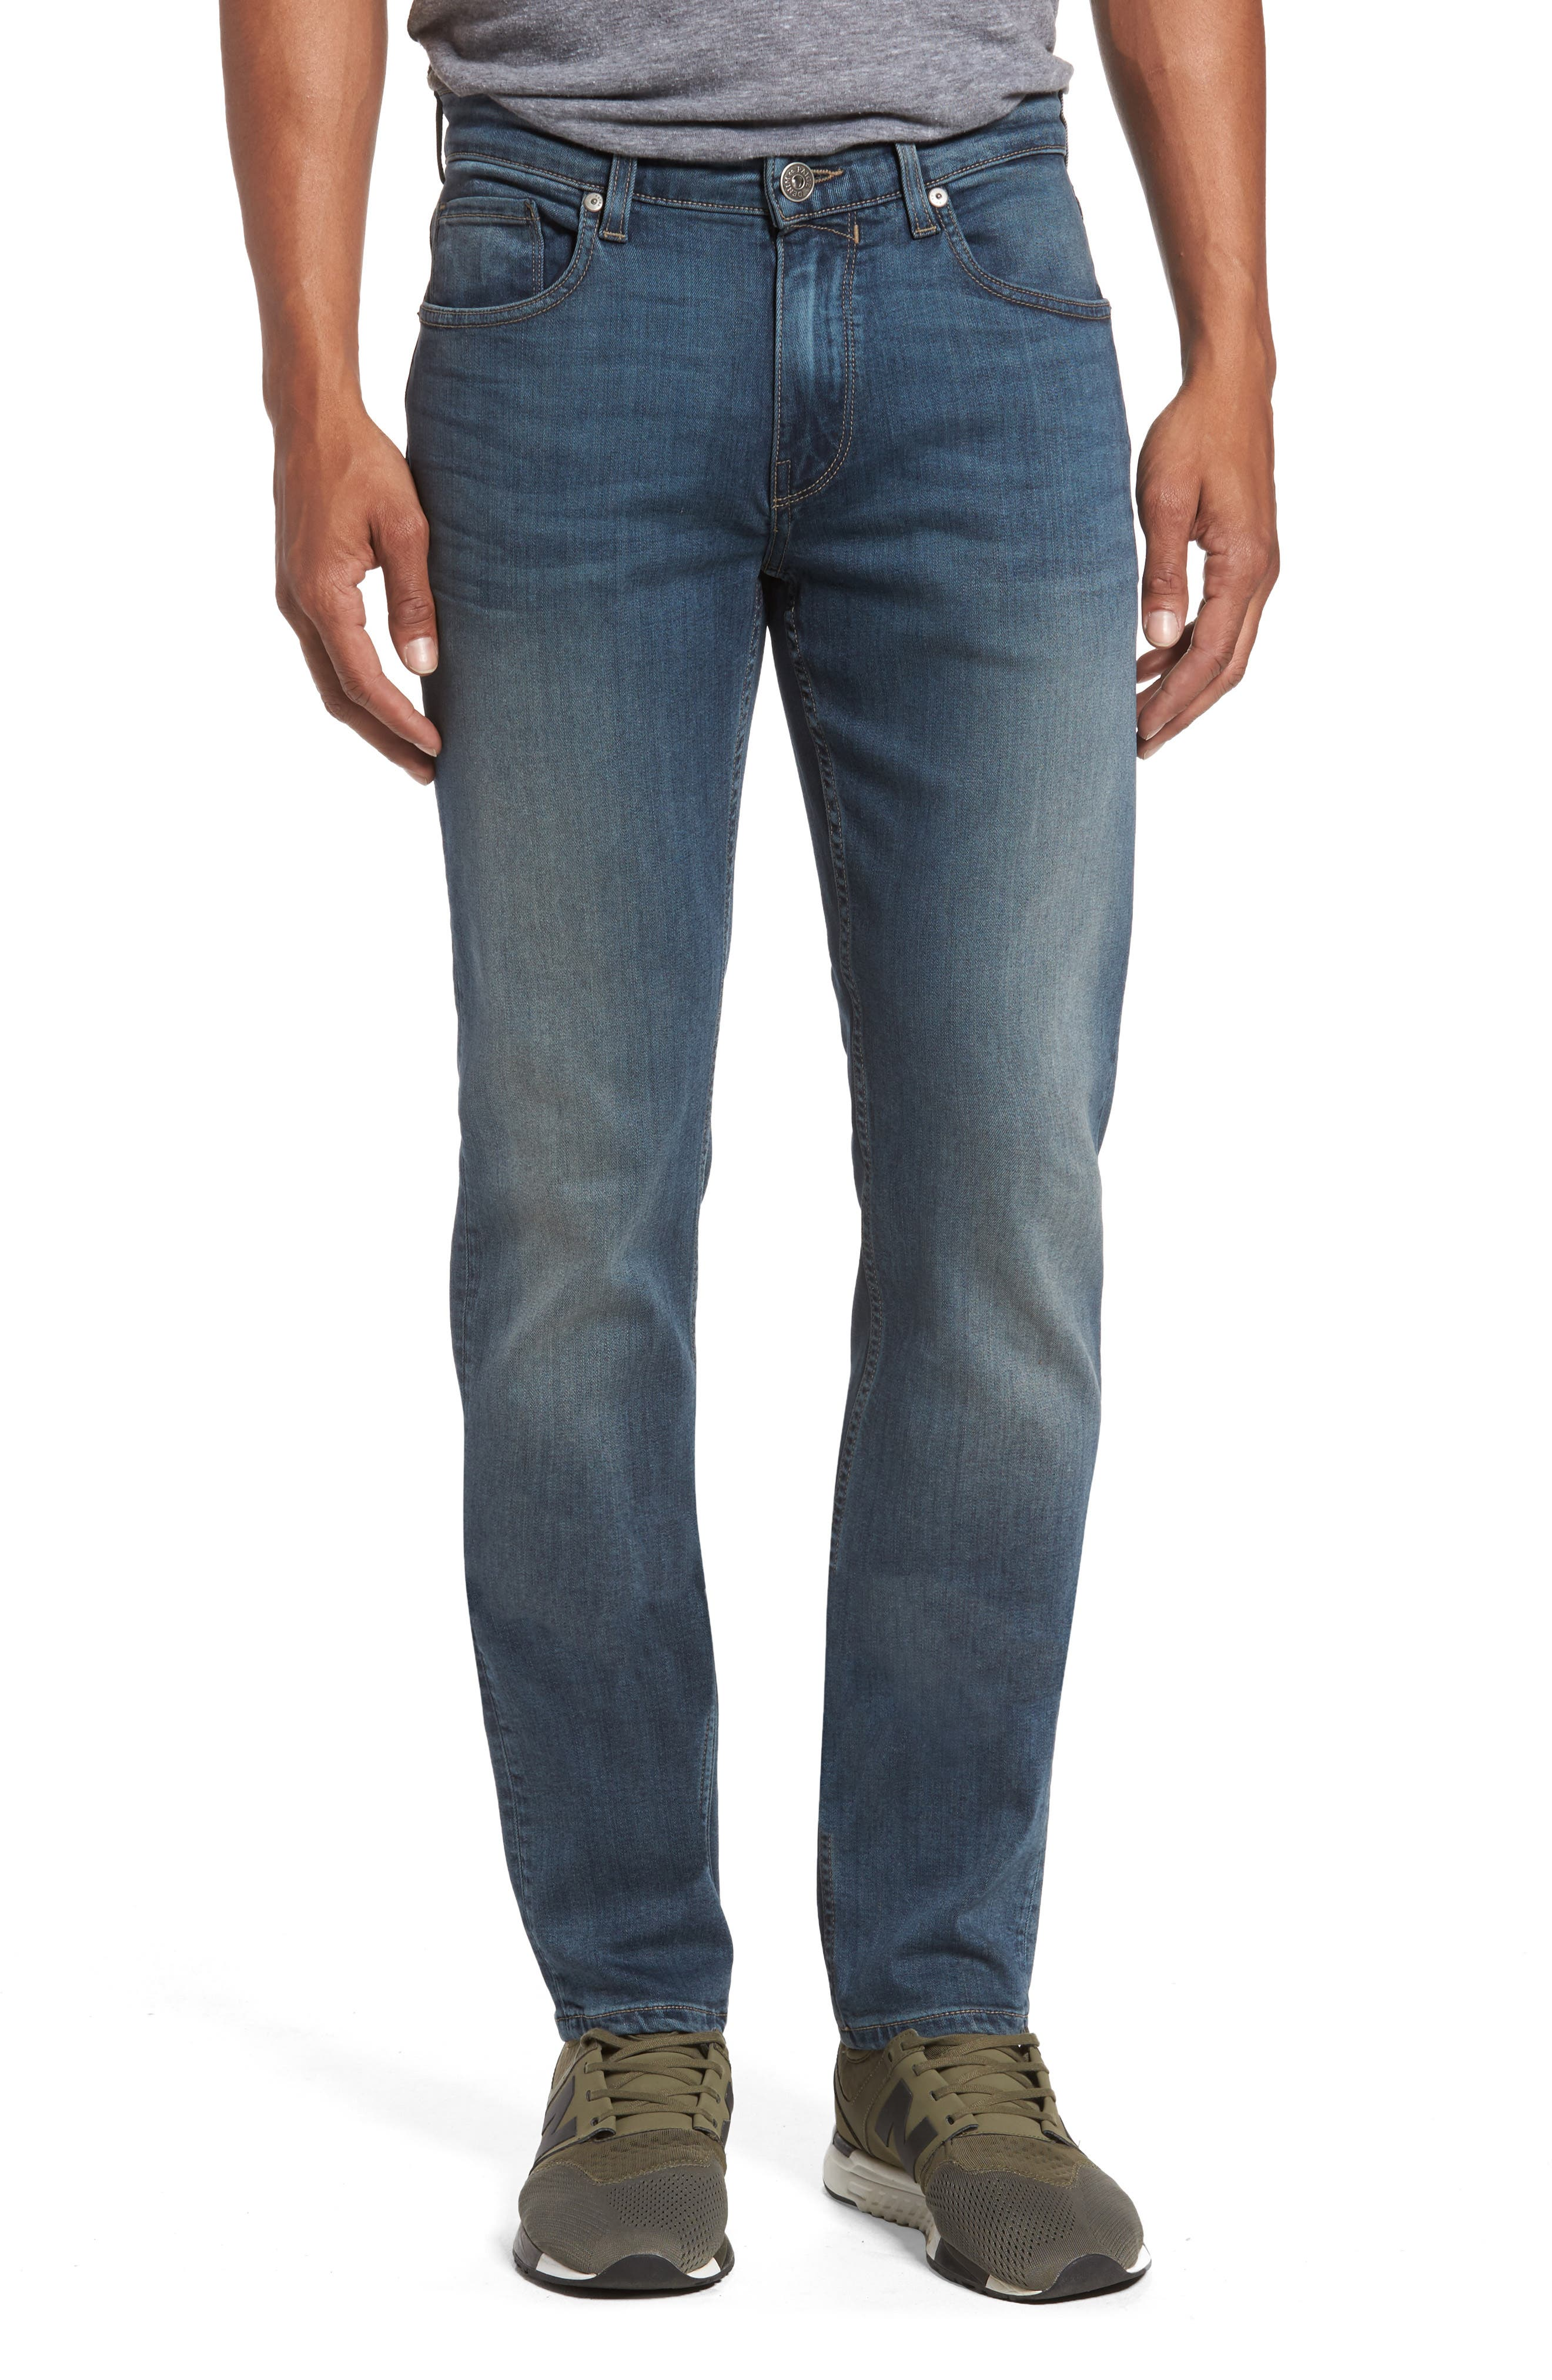 Transcend - Lennox Slim Fit Jeans,                             Main thumbnail 1, color,                             400